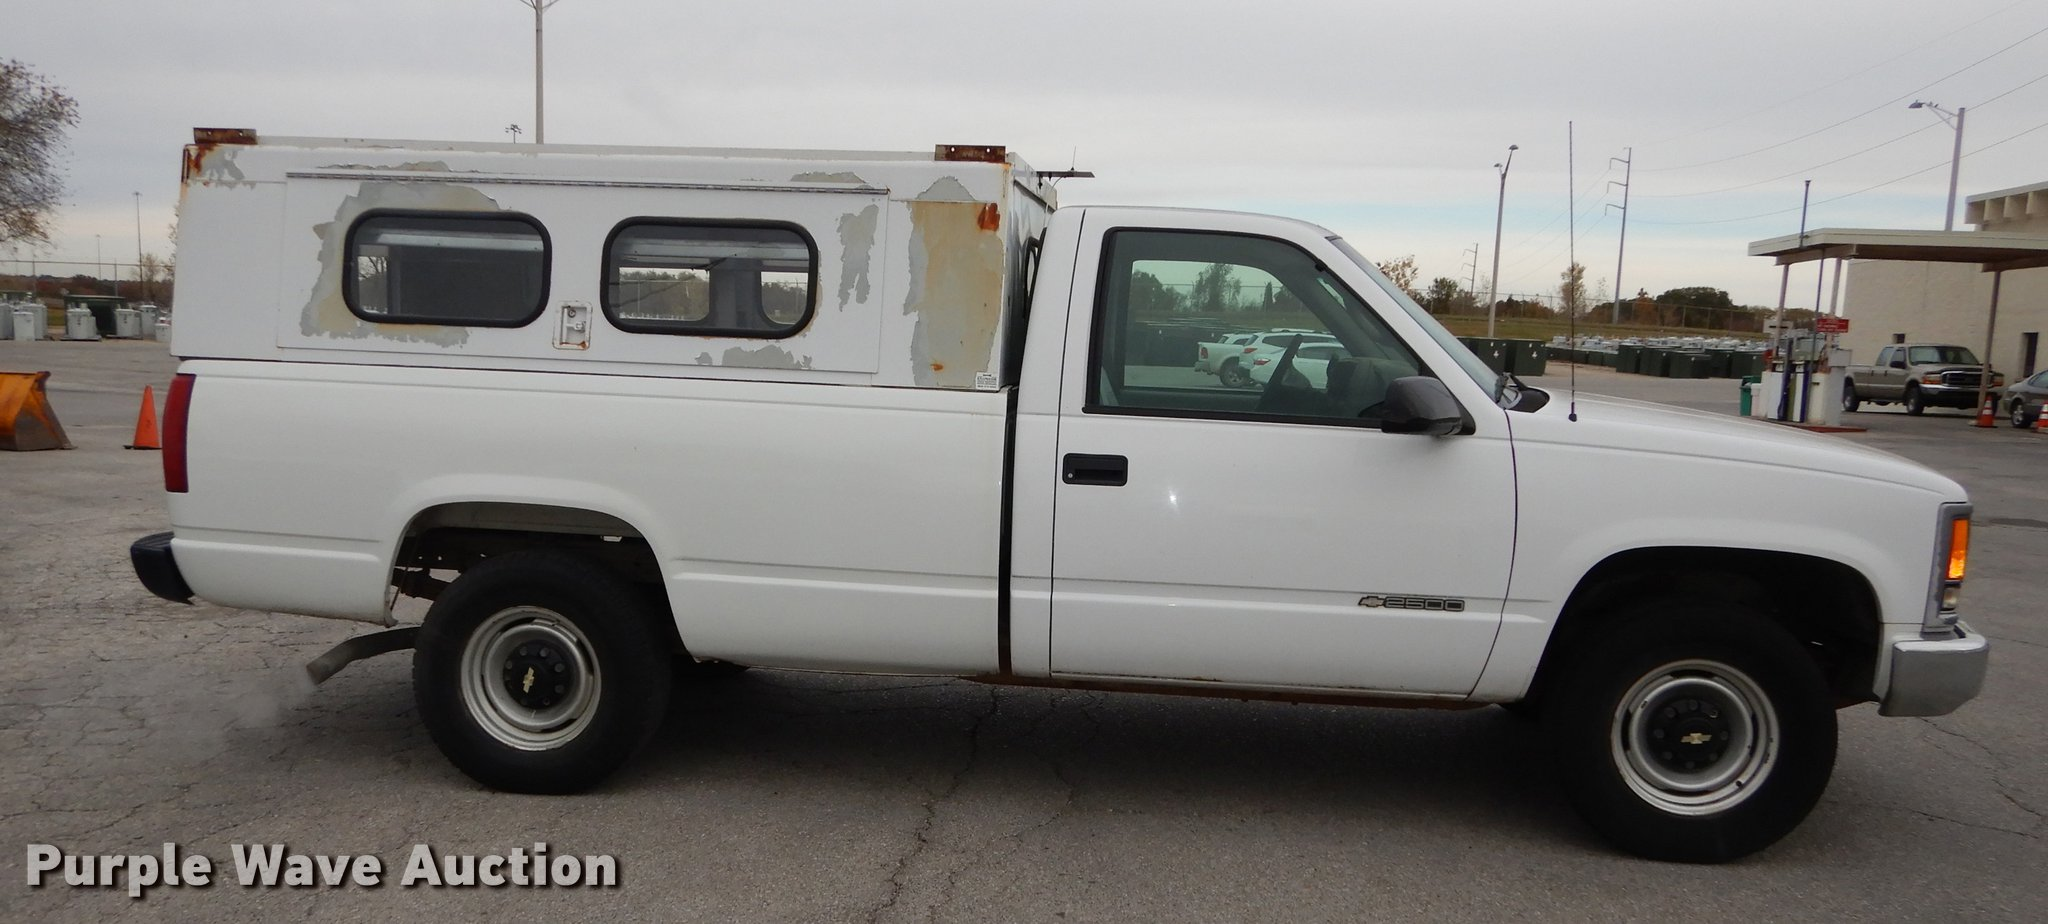 All Chevy 1999 chevrolet c2500 : 1999 Chevrolet C2500 pickup truck | Item DA1359 | Tuesday De...